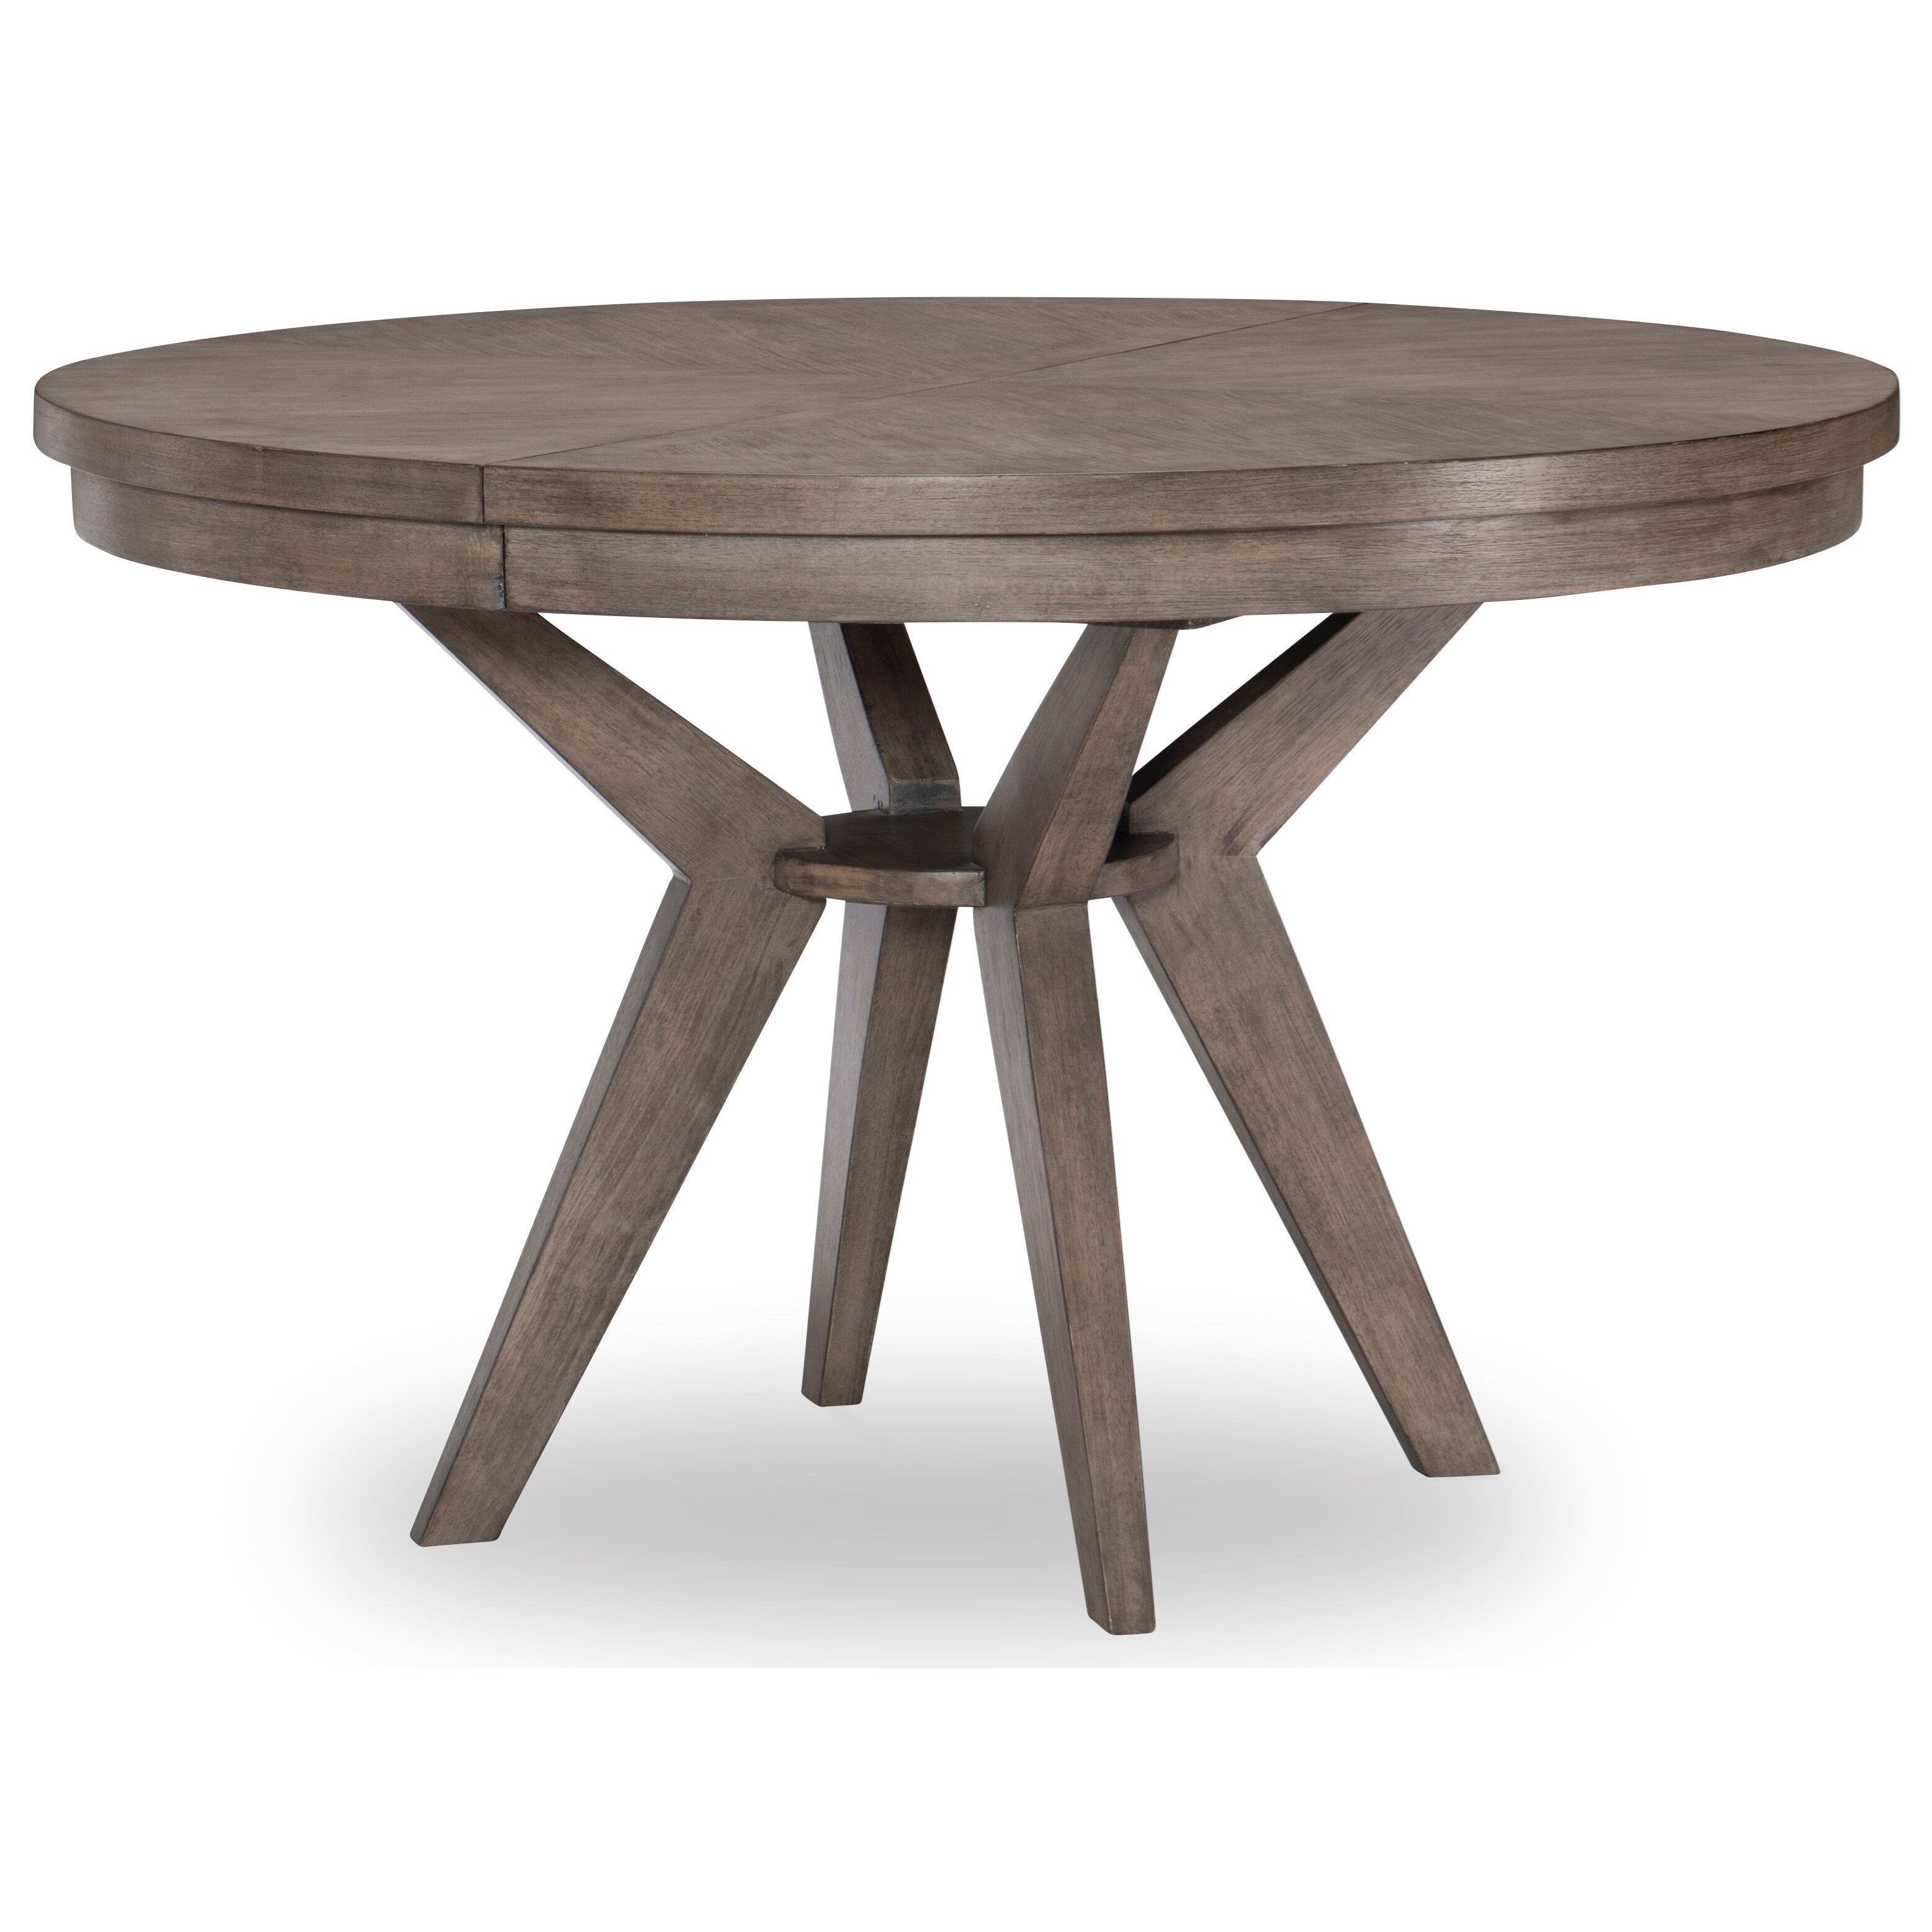 Greystone Round to Oval Pedestal Table by Legacy Classic at Johnny Janosik